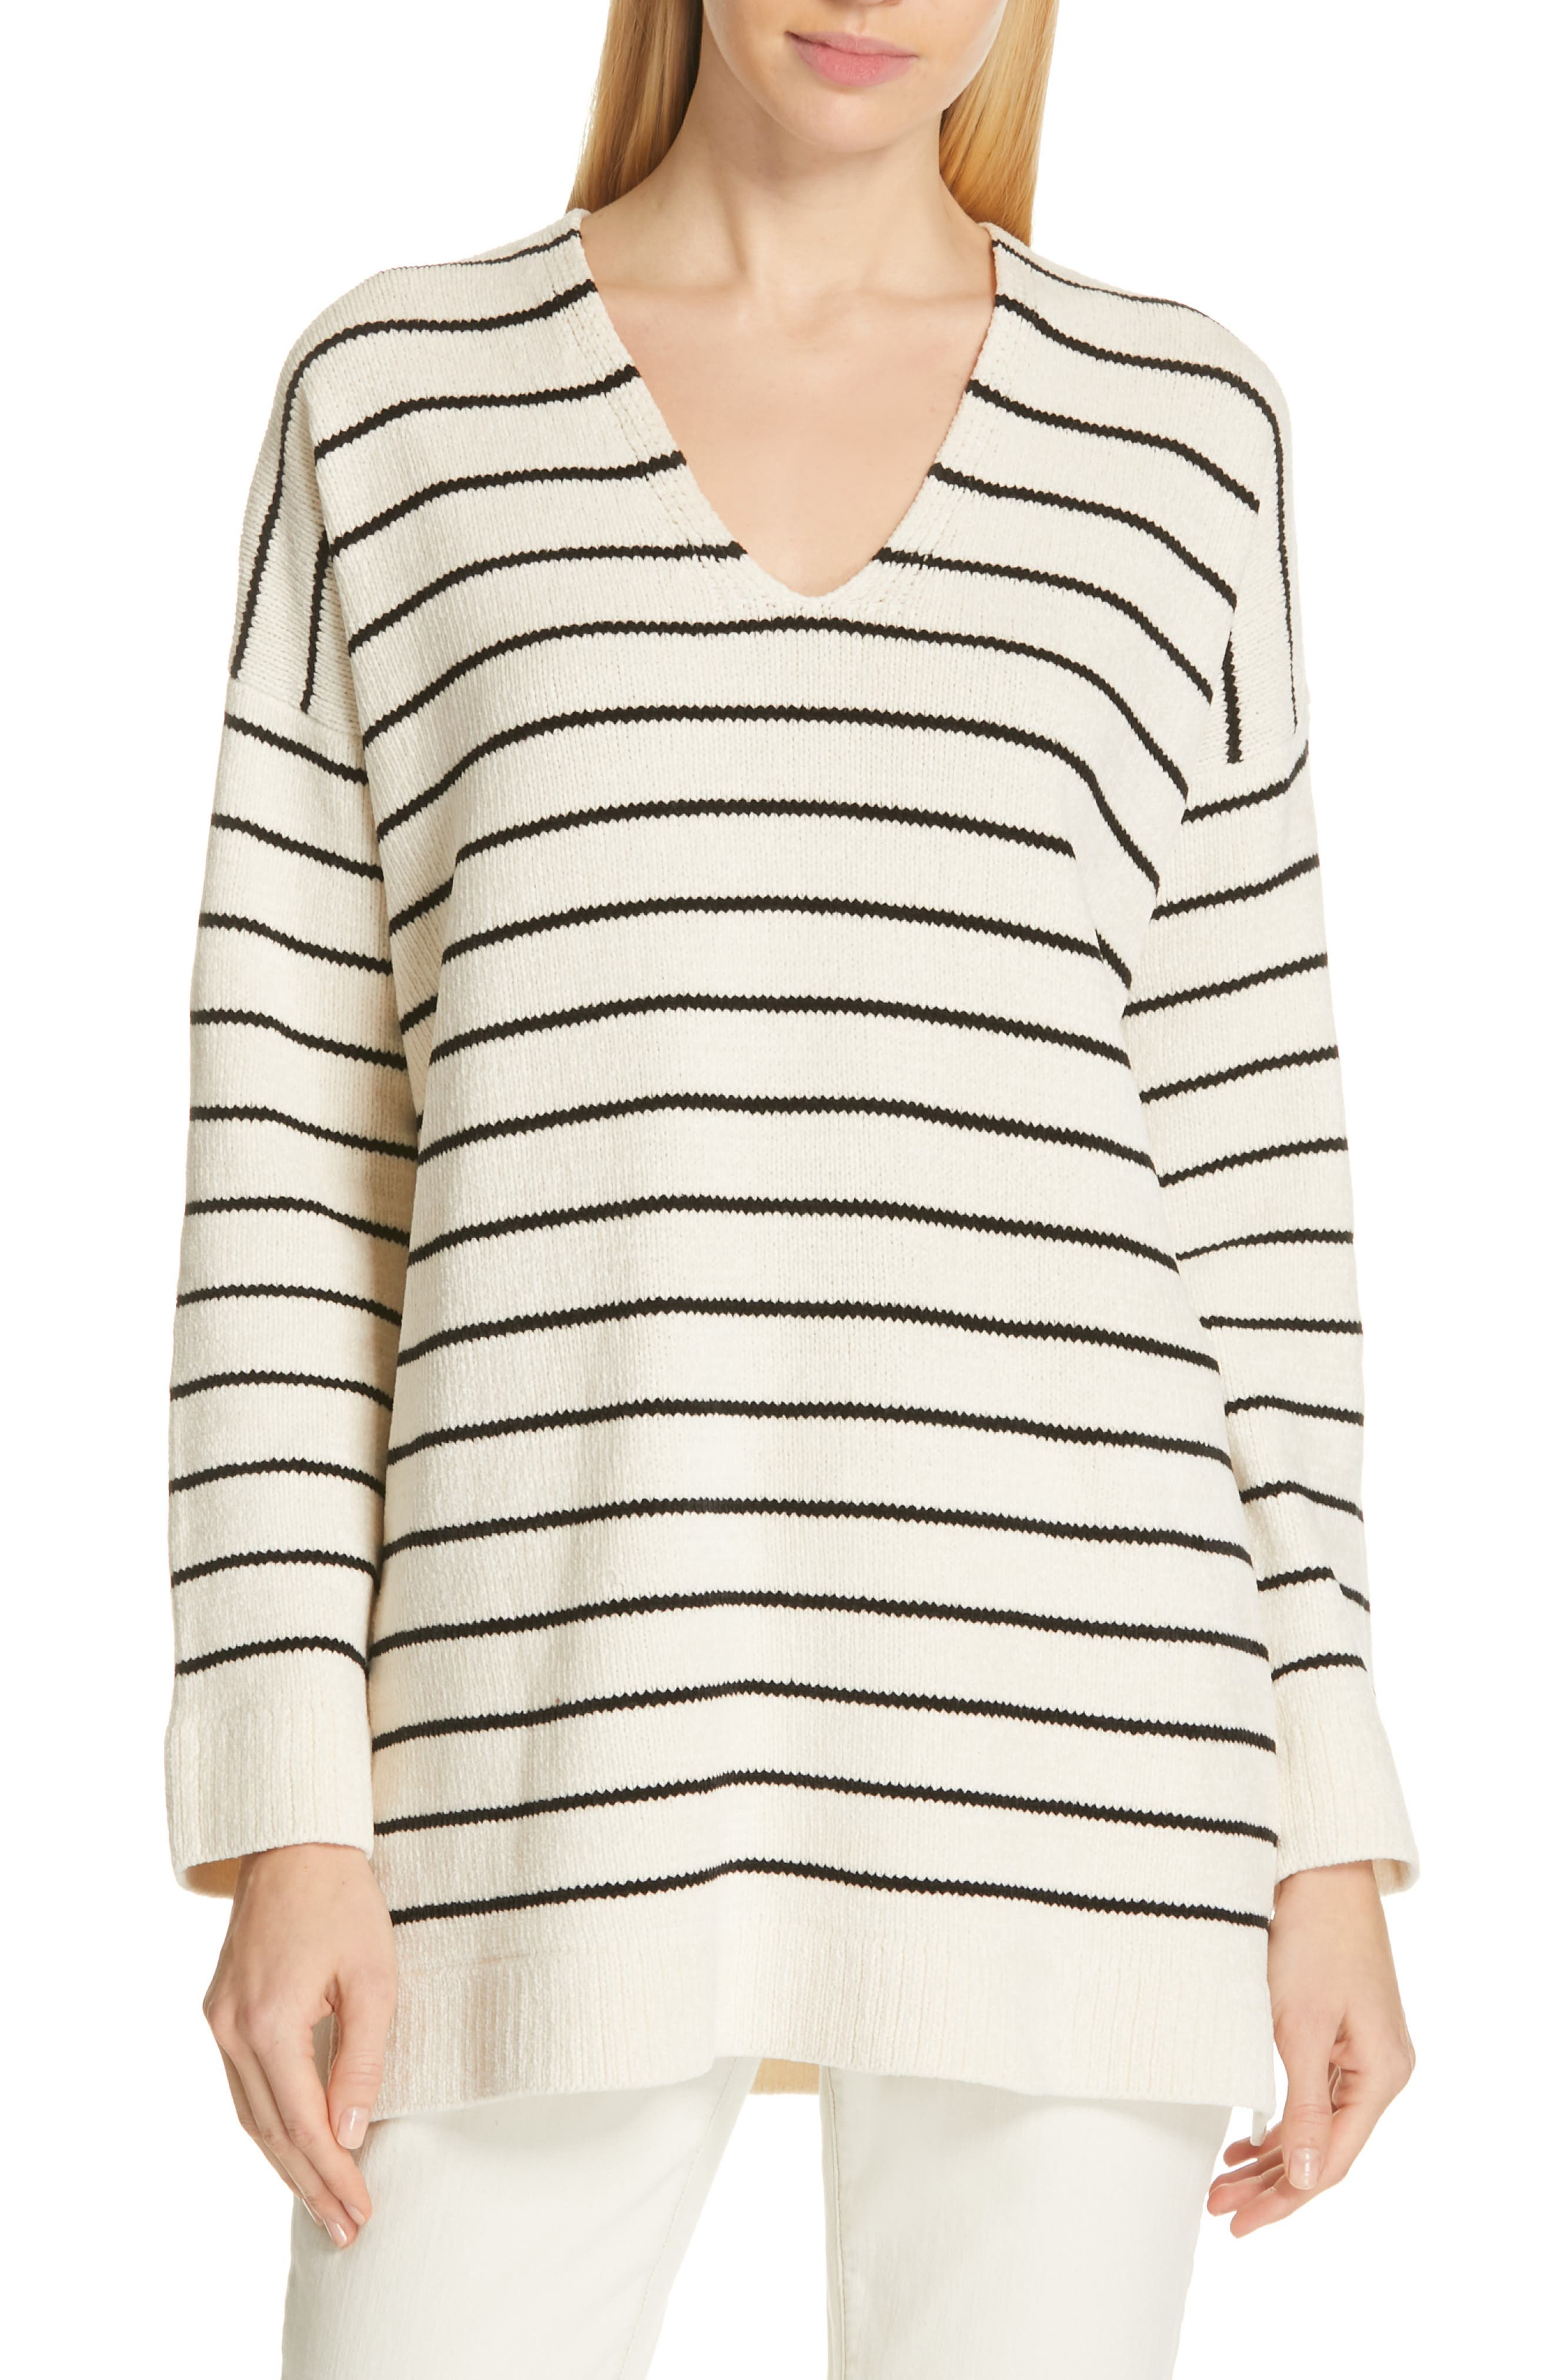 EILEEN FISHER, V-Neck Tunic Sweater, Main thumbnail 1, color, SOFT WHITE/ BLACK